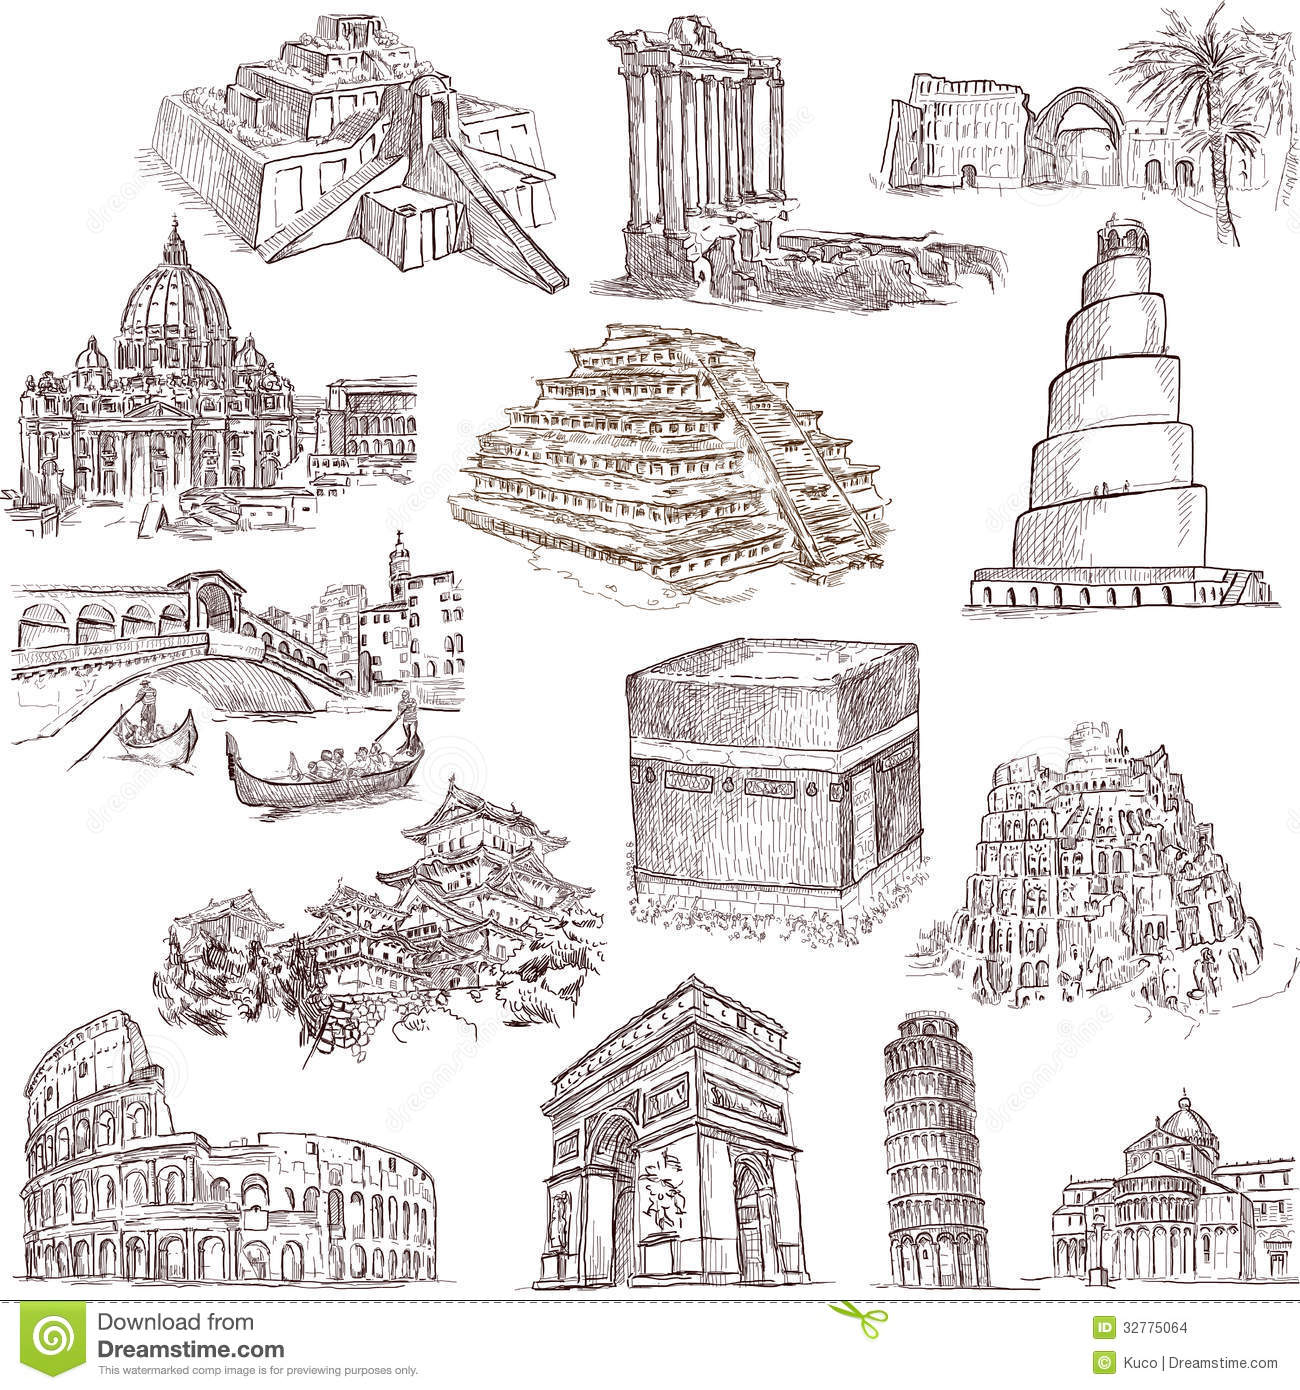 Architectural Drawings Of Famous Buildings